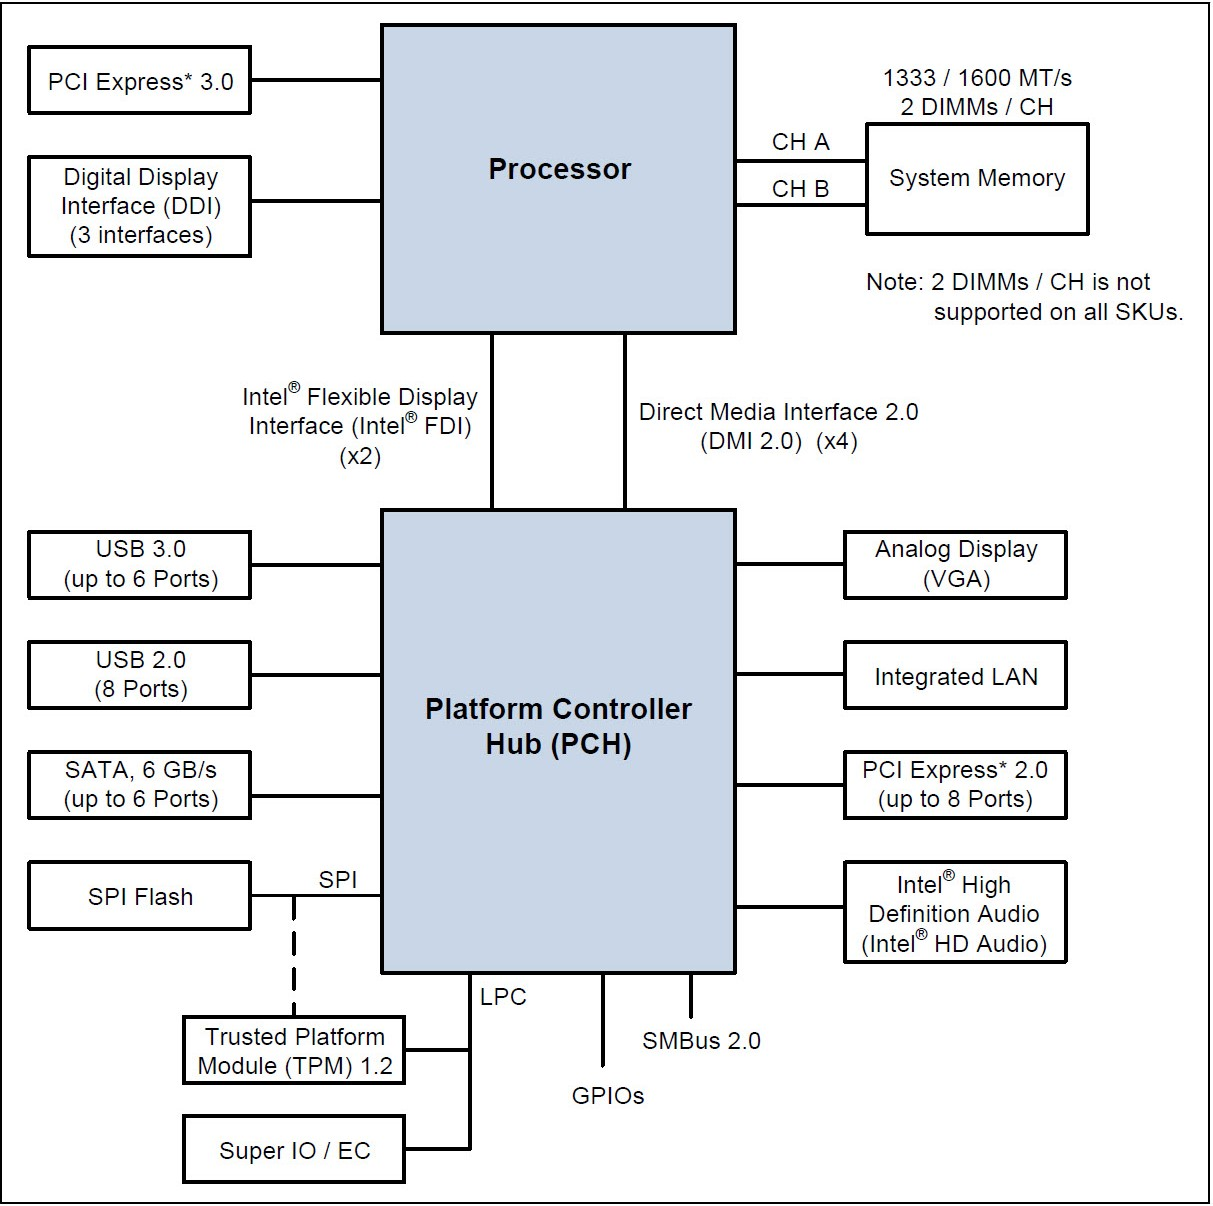 computer architecture block diagram animal vs plant cell pci express is the south bridge on today 39s motherboard